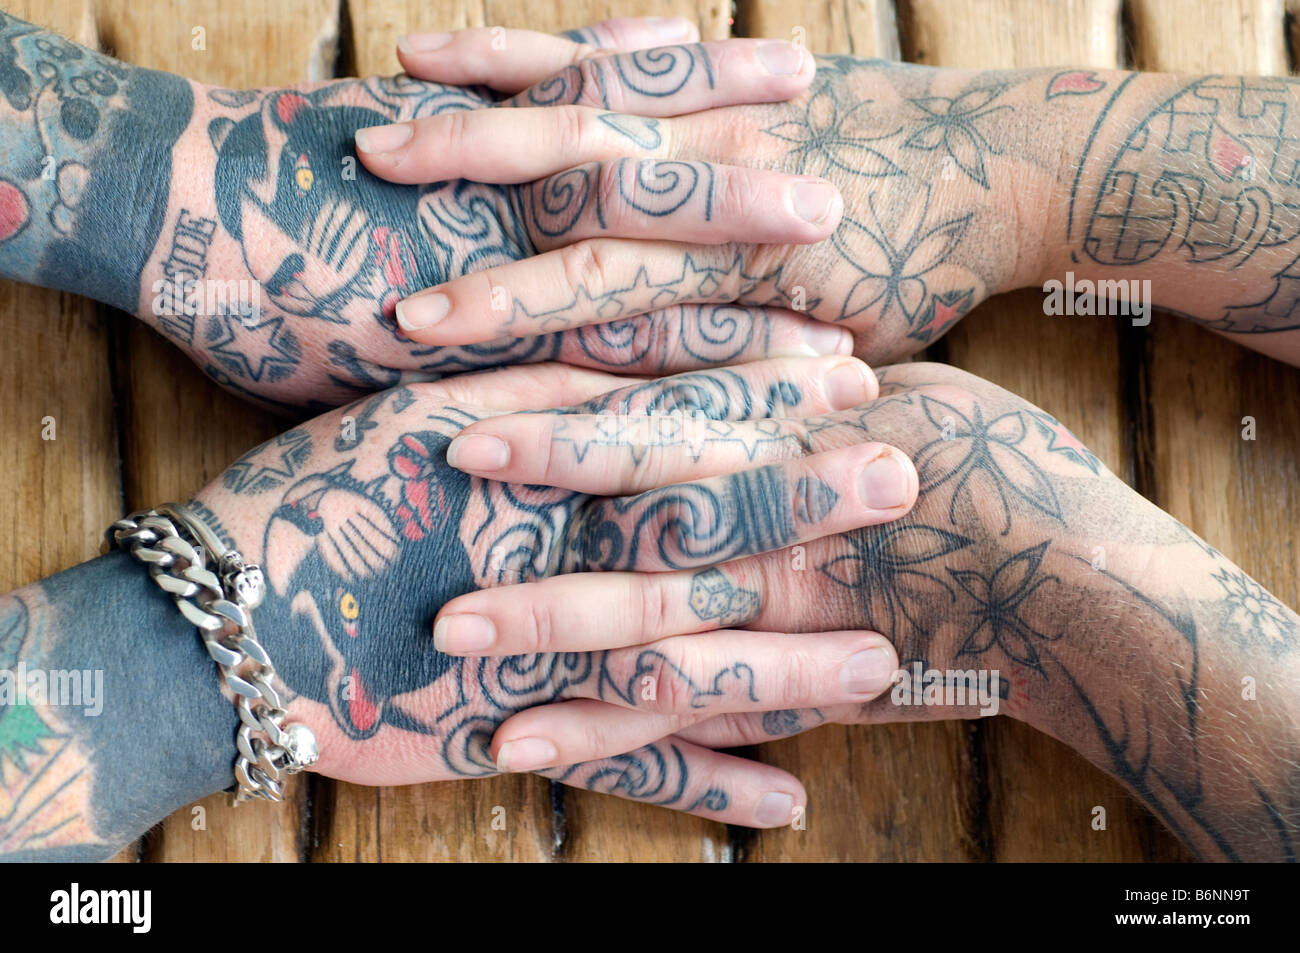 The entwined hands of a married couple who both have extensive tattoos - Stock Image